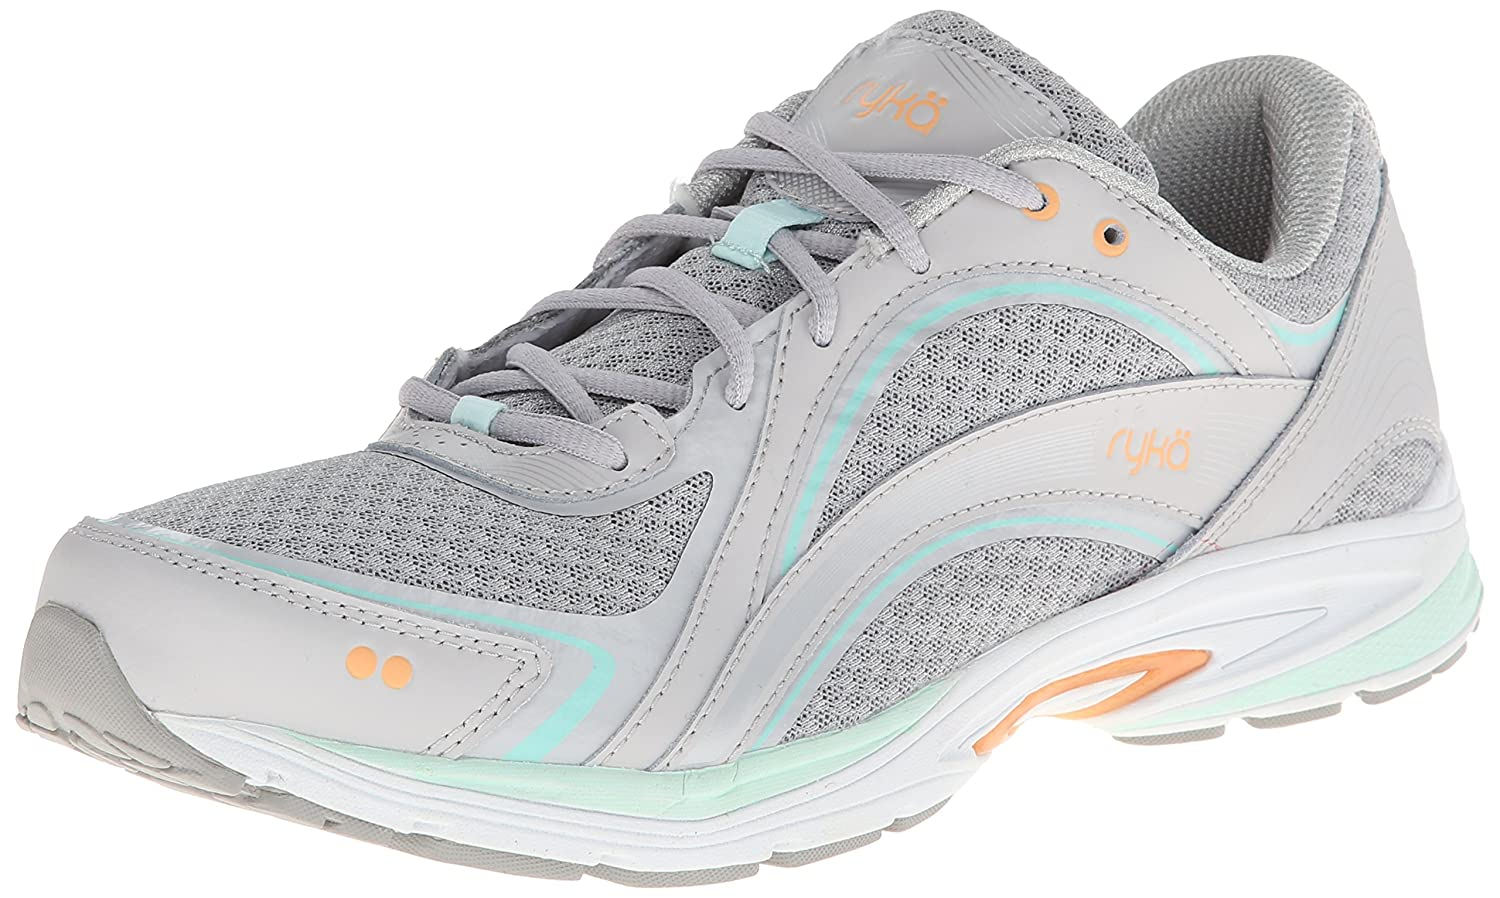 Ryka レディース SKY WALK B00HNDB04M 7.5 B(M) US|Chrome Silver/Cool Mist Grey/Mint Ice Chrome Silver/Cool Mist Grey/Mint Ice 7.5 B(M) US